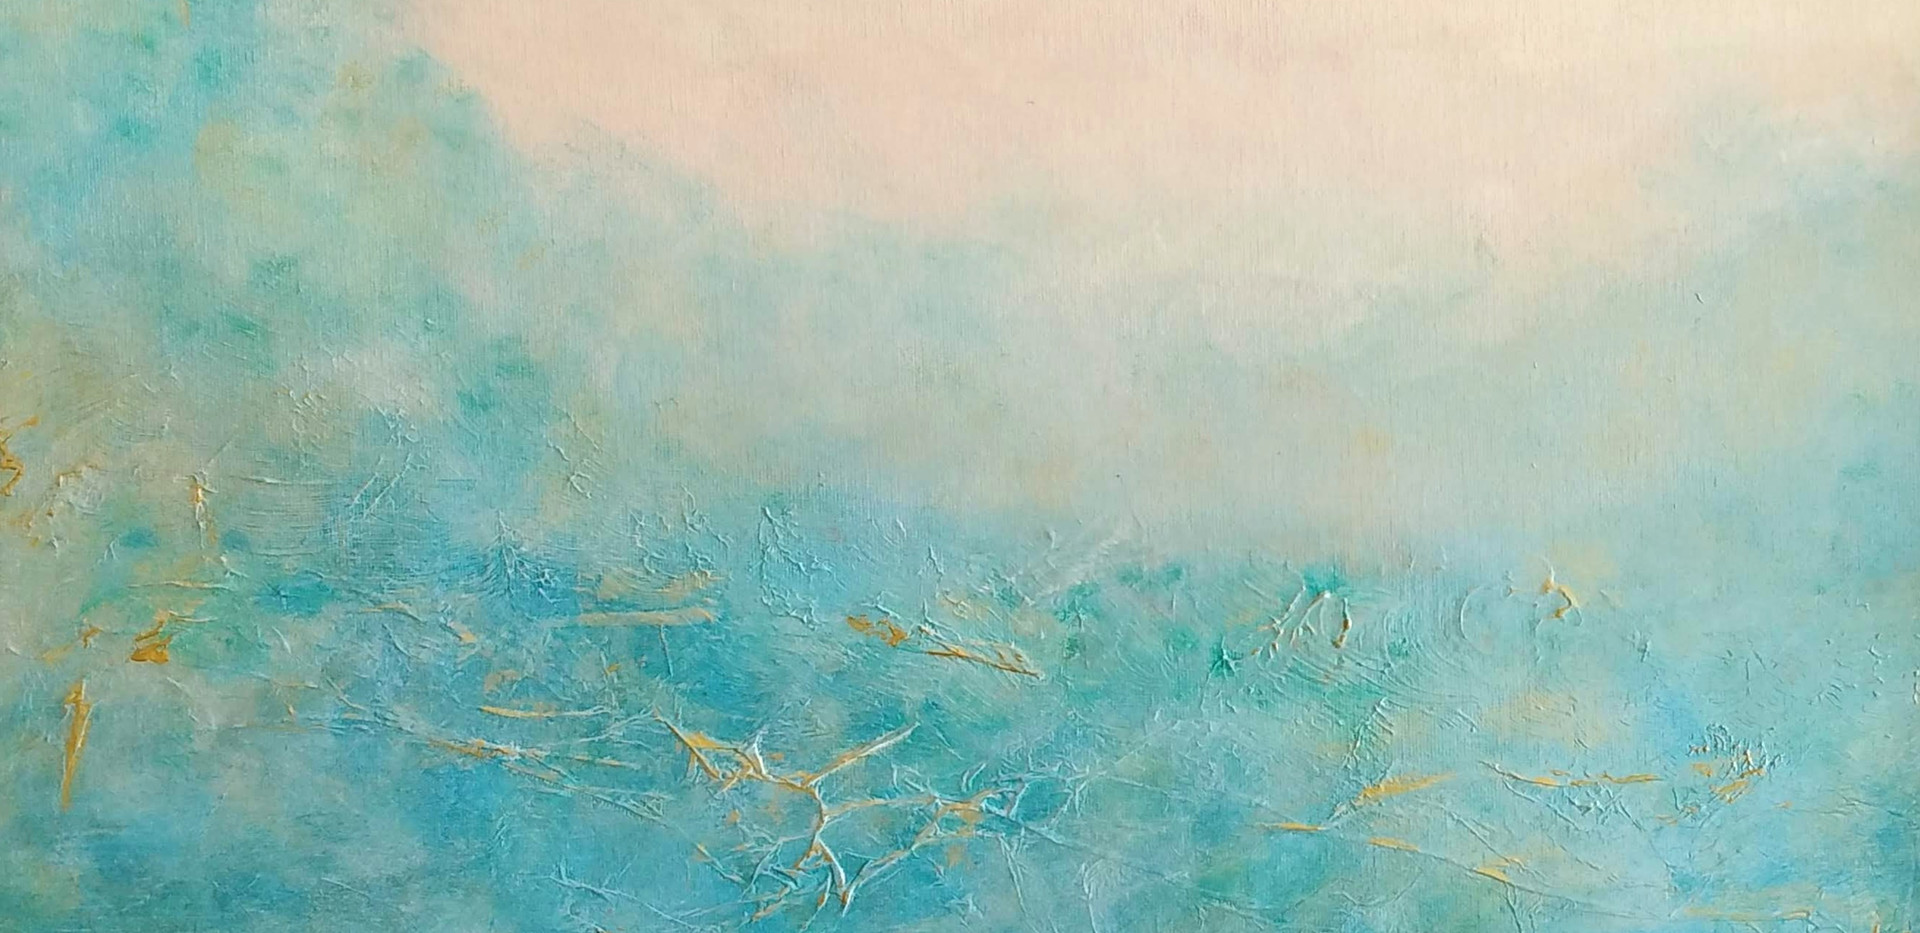 Blue Gold Abstract Landscape Acrylic on Board 50x60cm SOLD